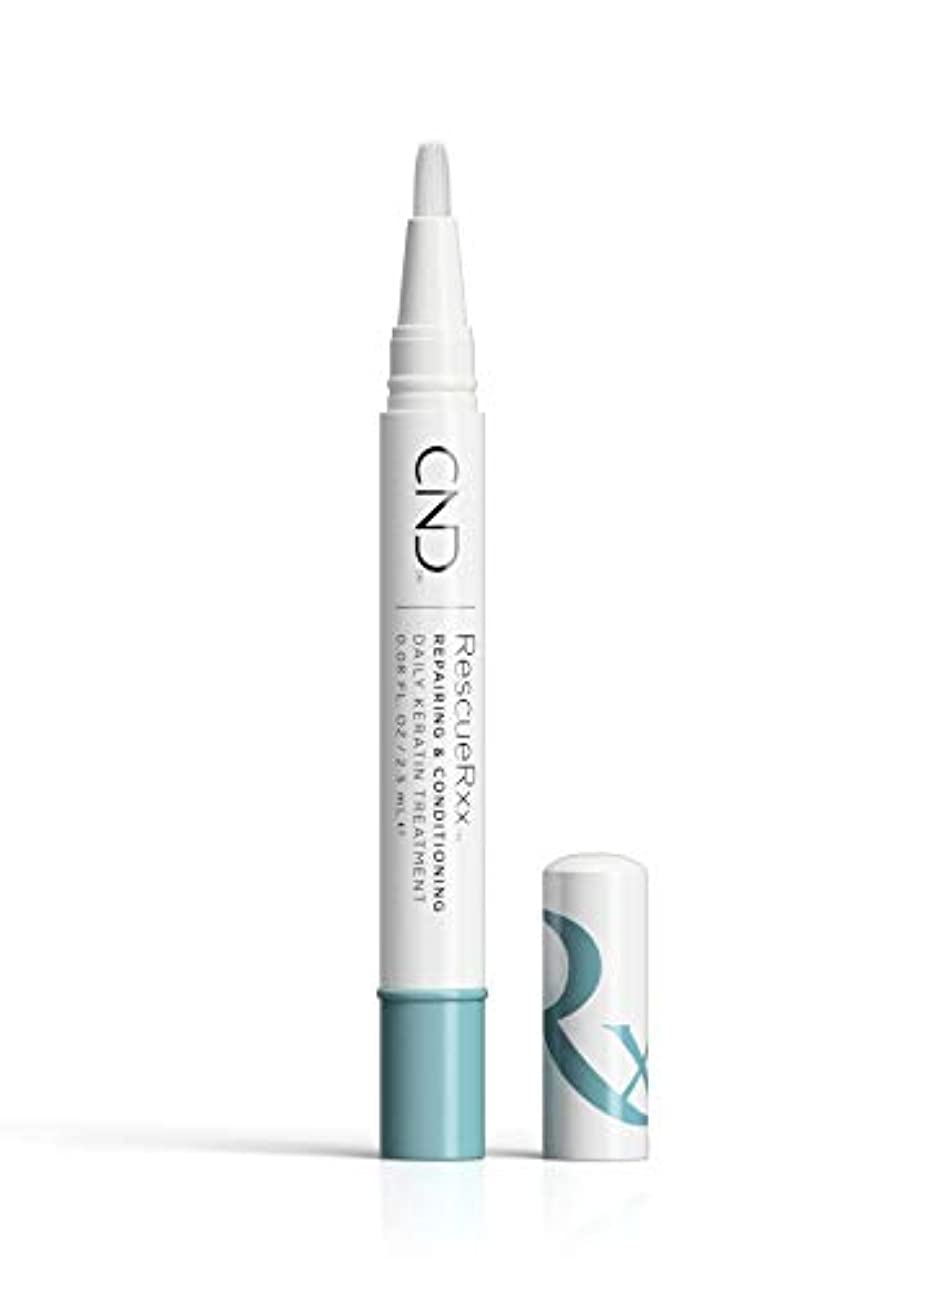 直径旋回豚CND RescueRxx - Daily Keratin Treatment Pen - 0.08oz / 2.5ml